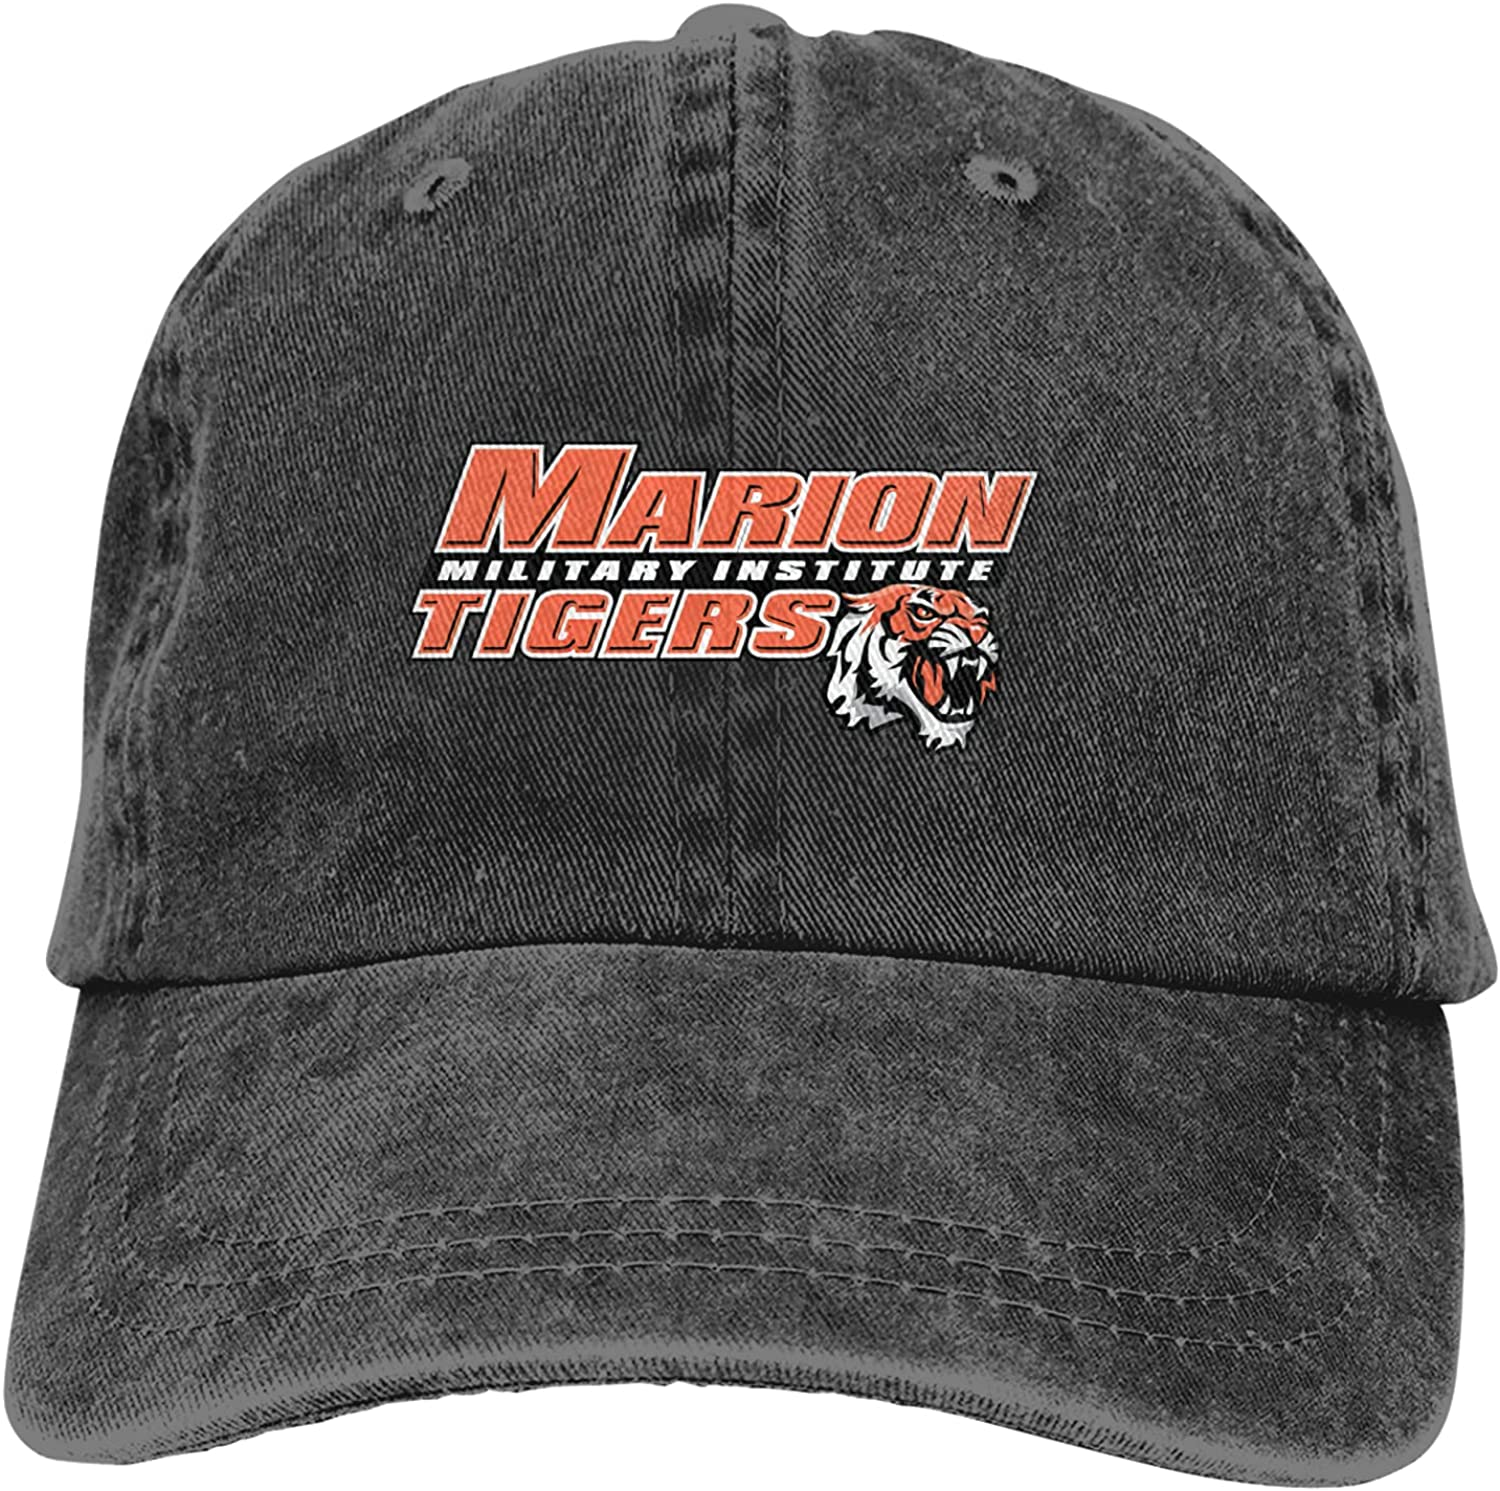 Yund Marion Some reservation Military Institute Cap Students Suitable College for 2021 autumn and winter new